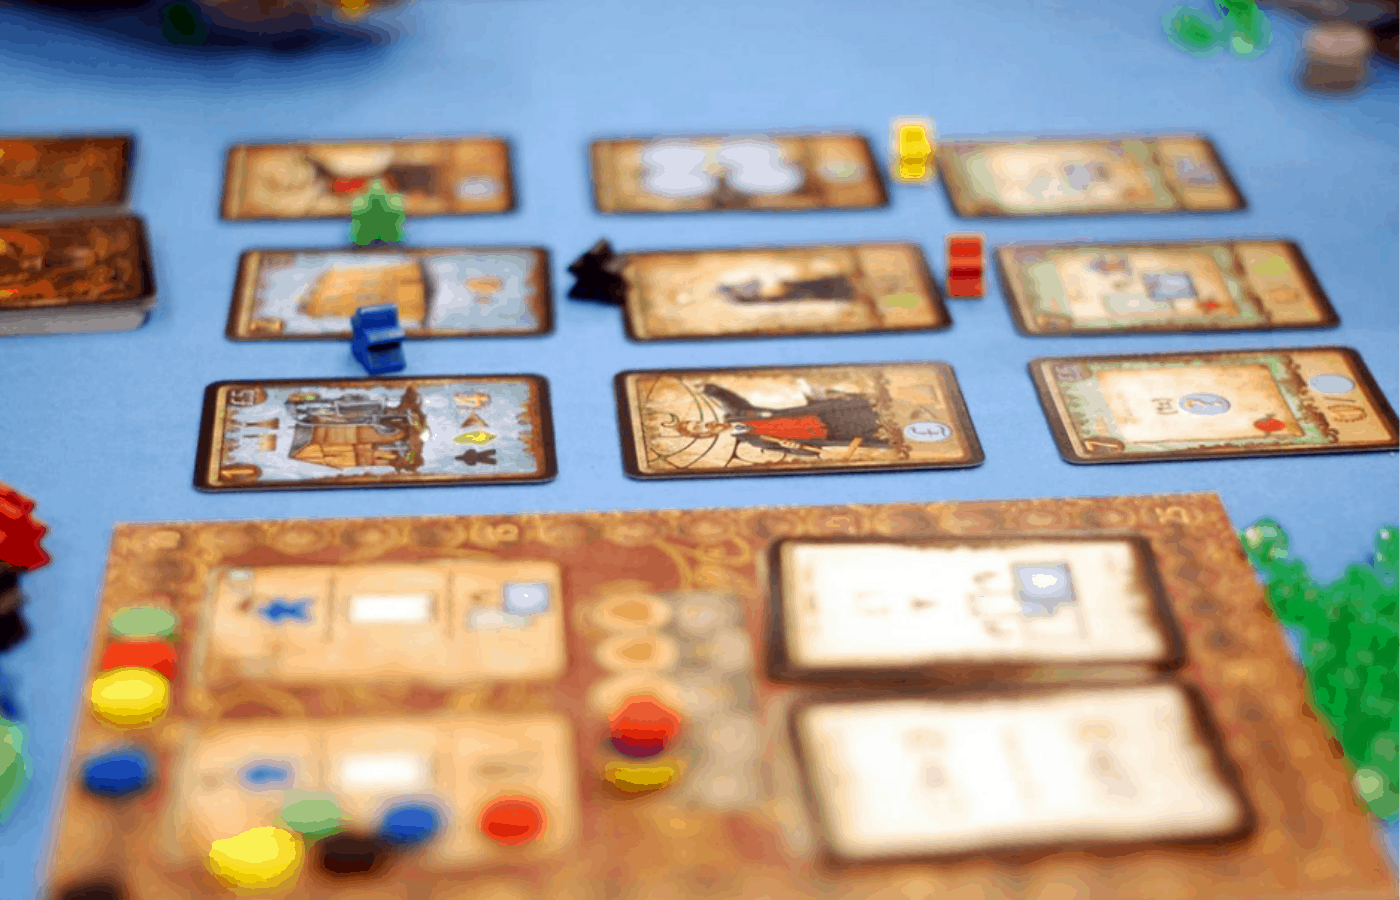 how do board games differ from puzzles